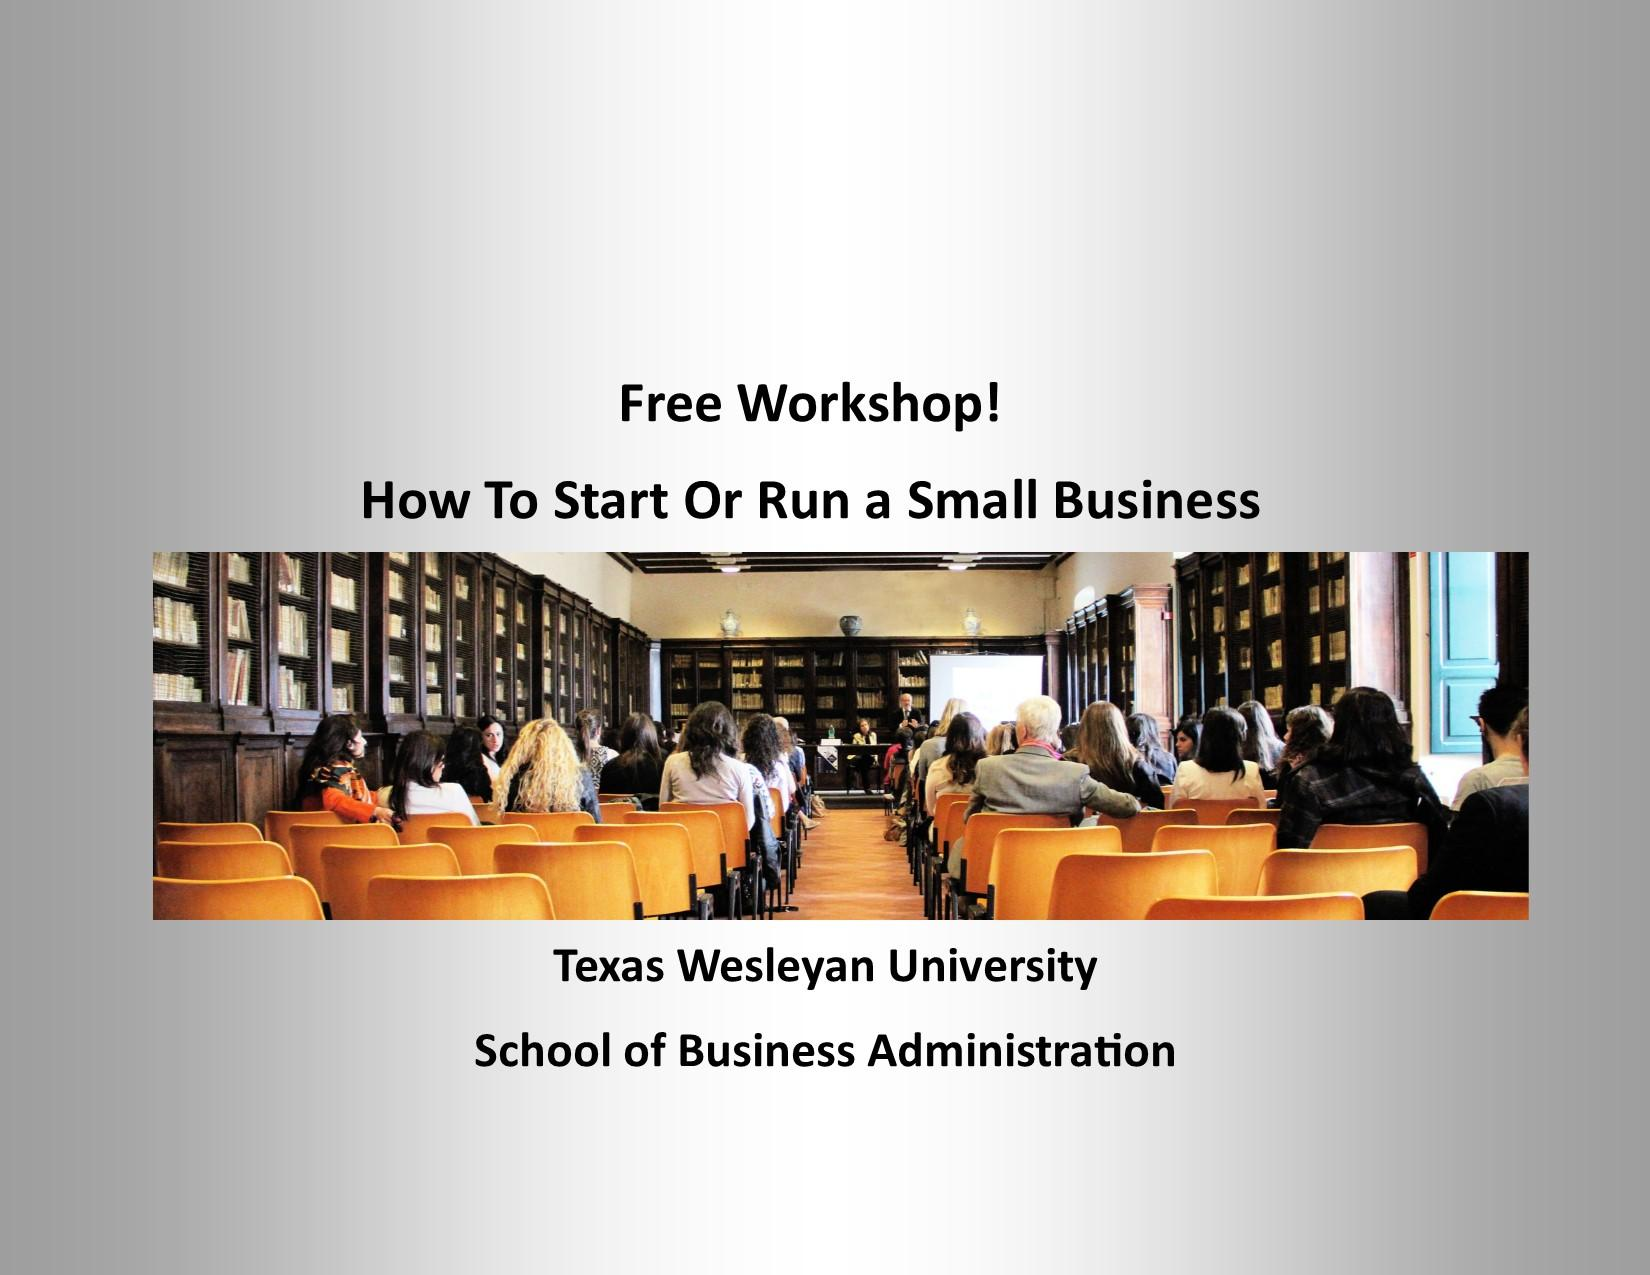 FREE Small Business Workshop in Ft Worth- How To Start Or Run A Small Business (presented by Texas Wesleyan University))